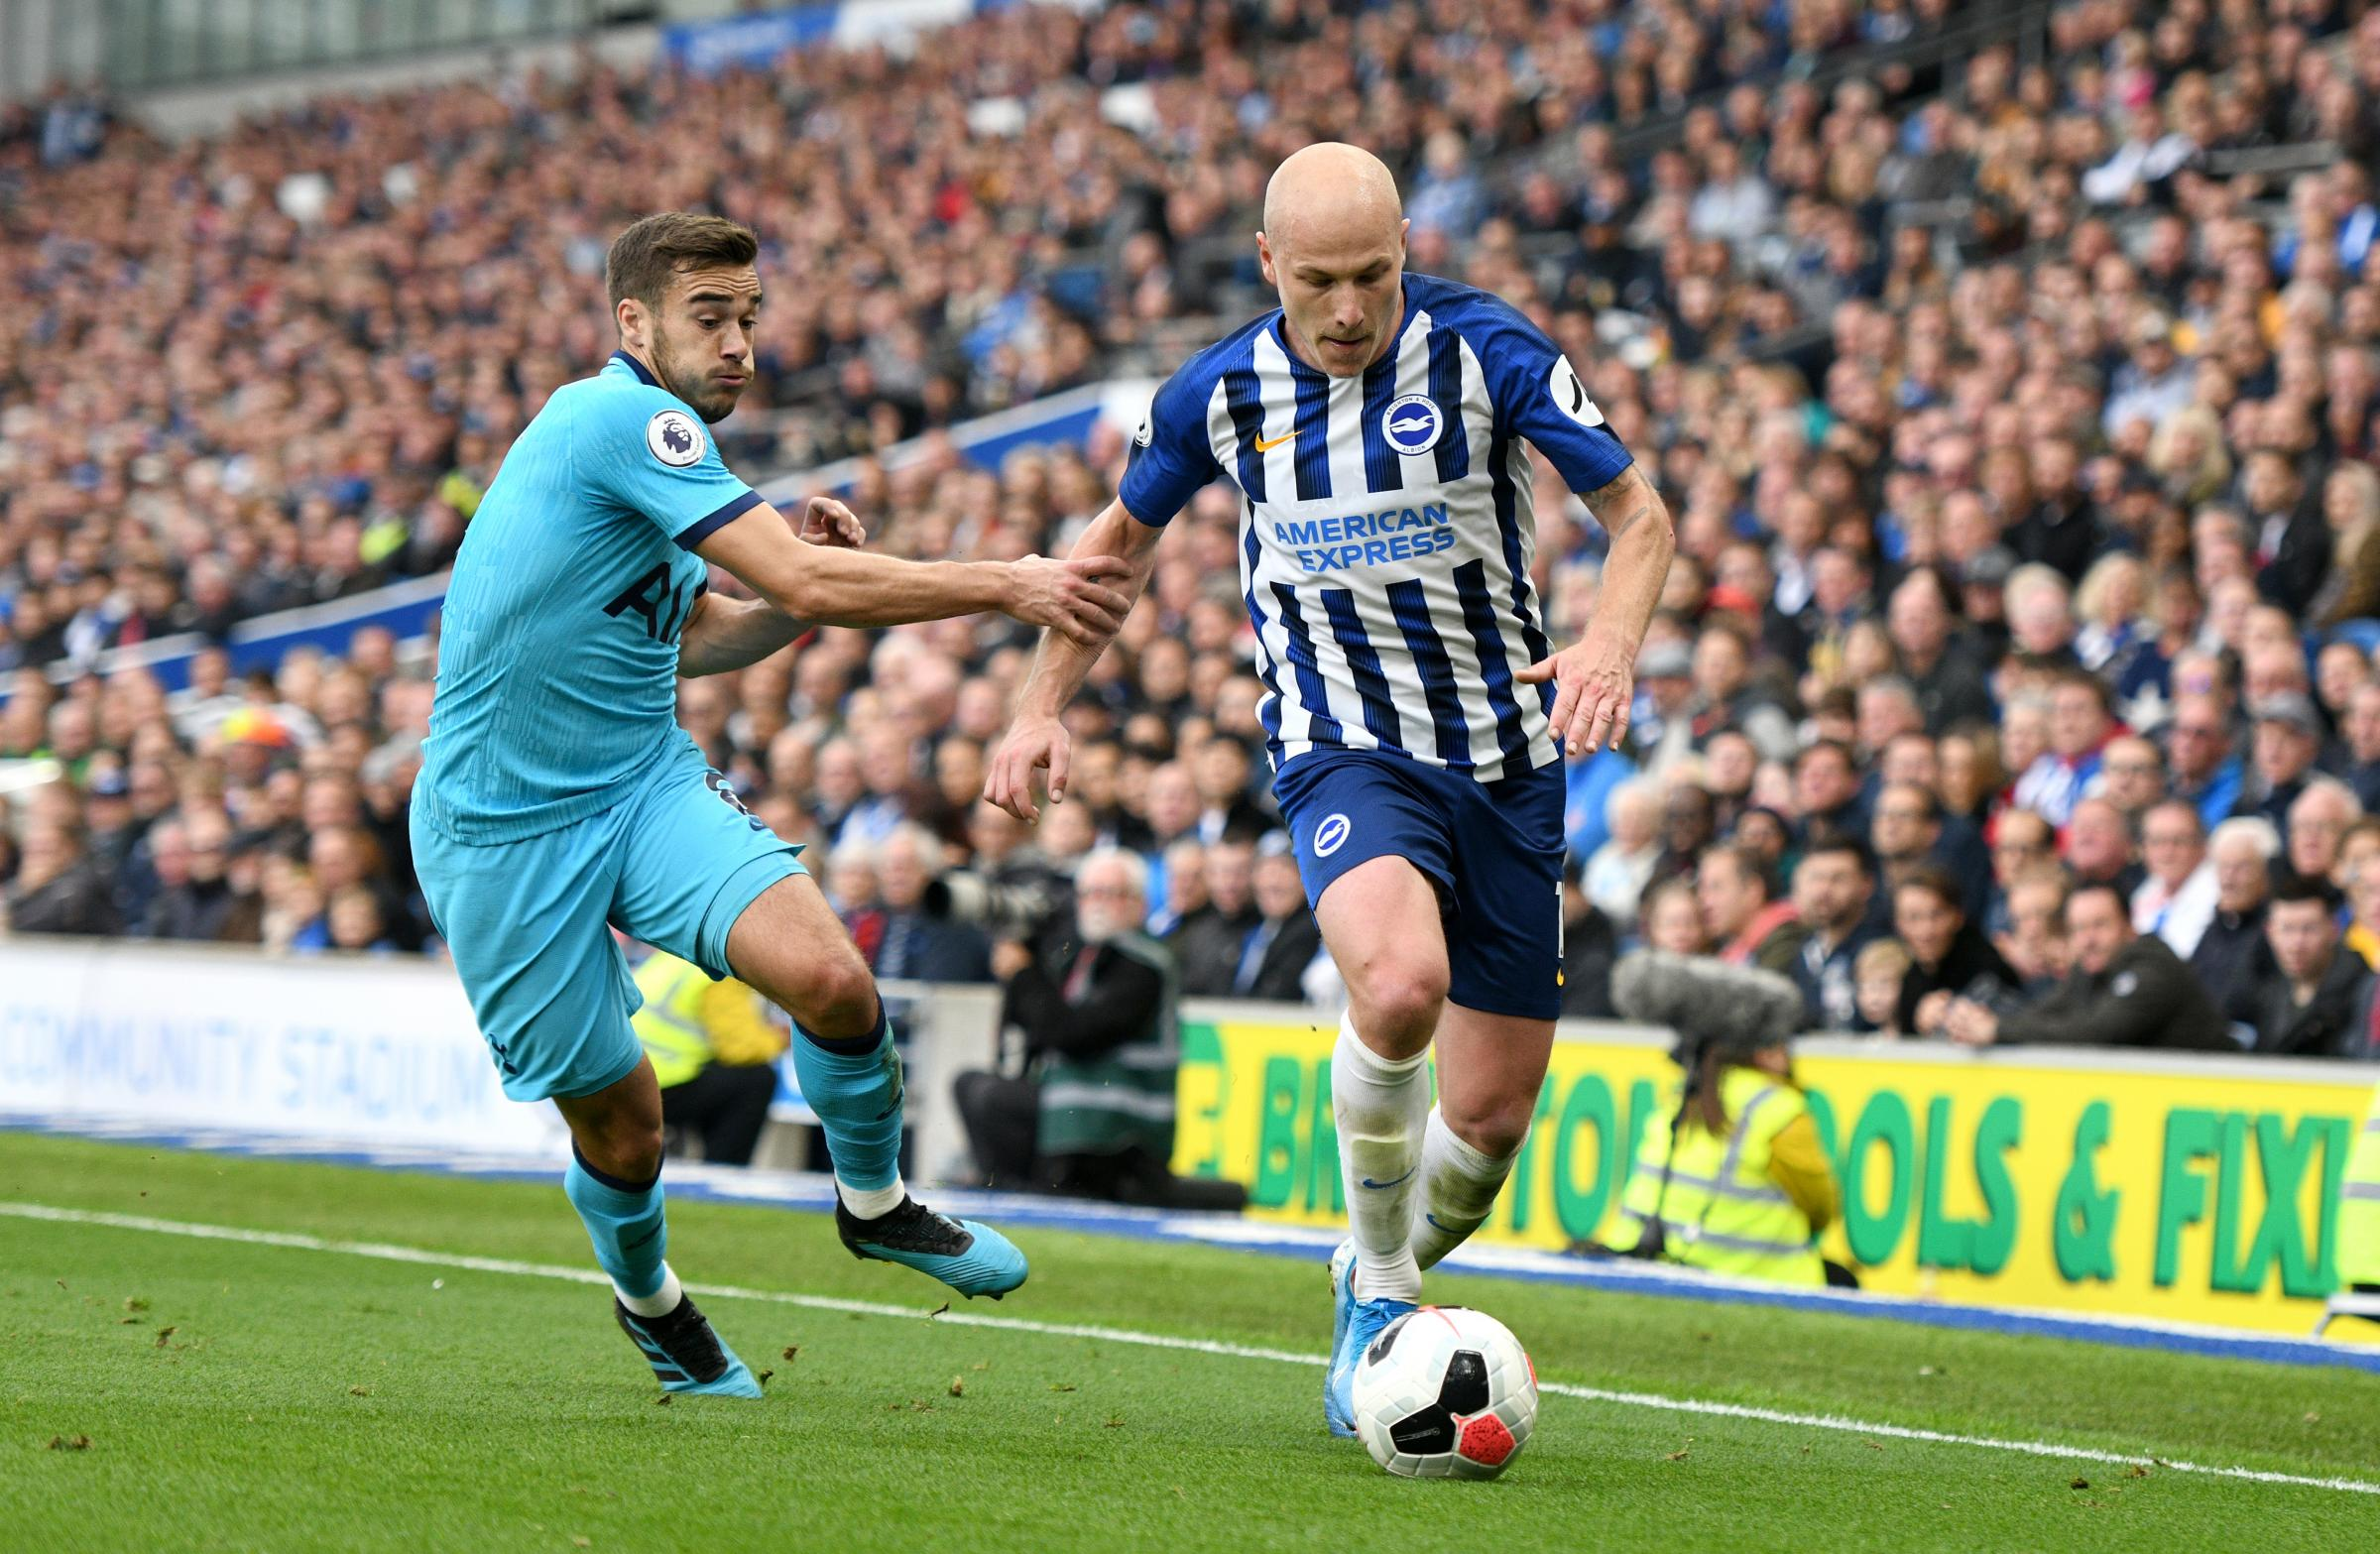 It's an Albion evolution and Aaron Mooy is playing his part